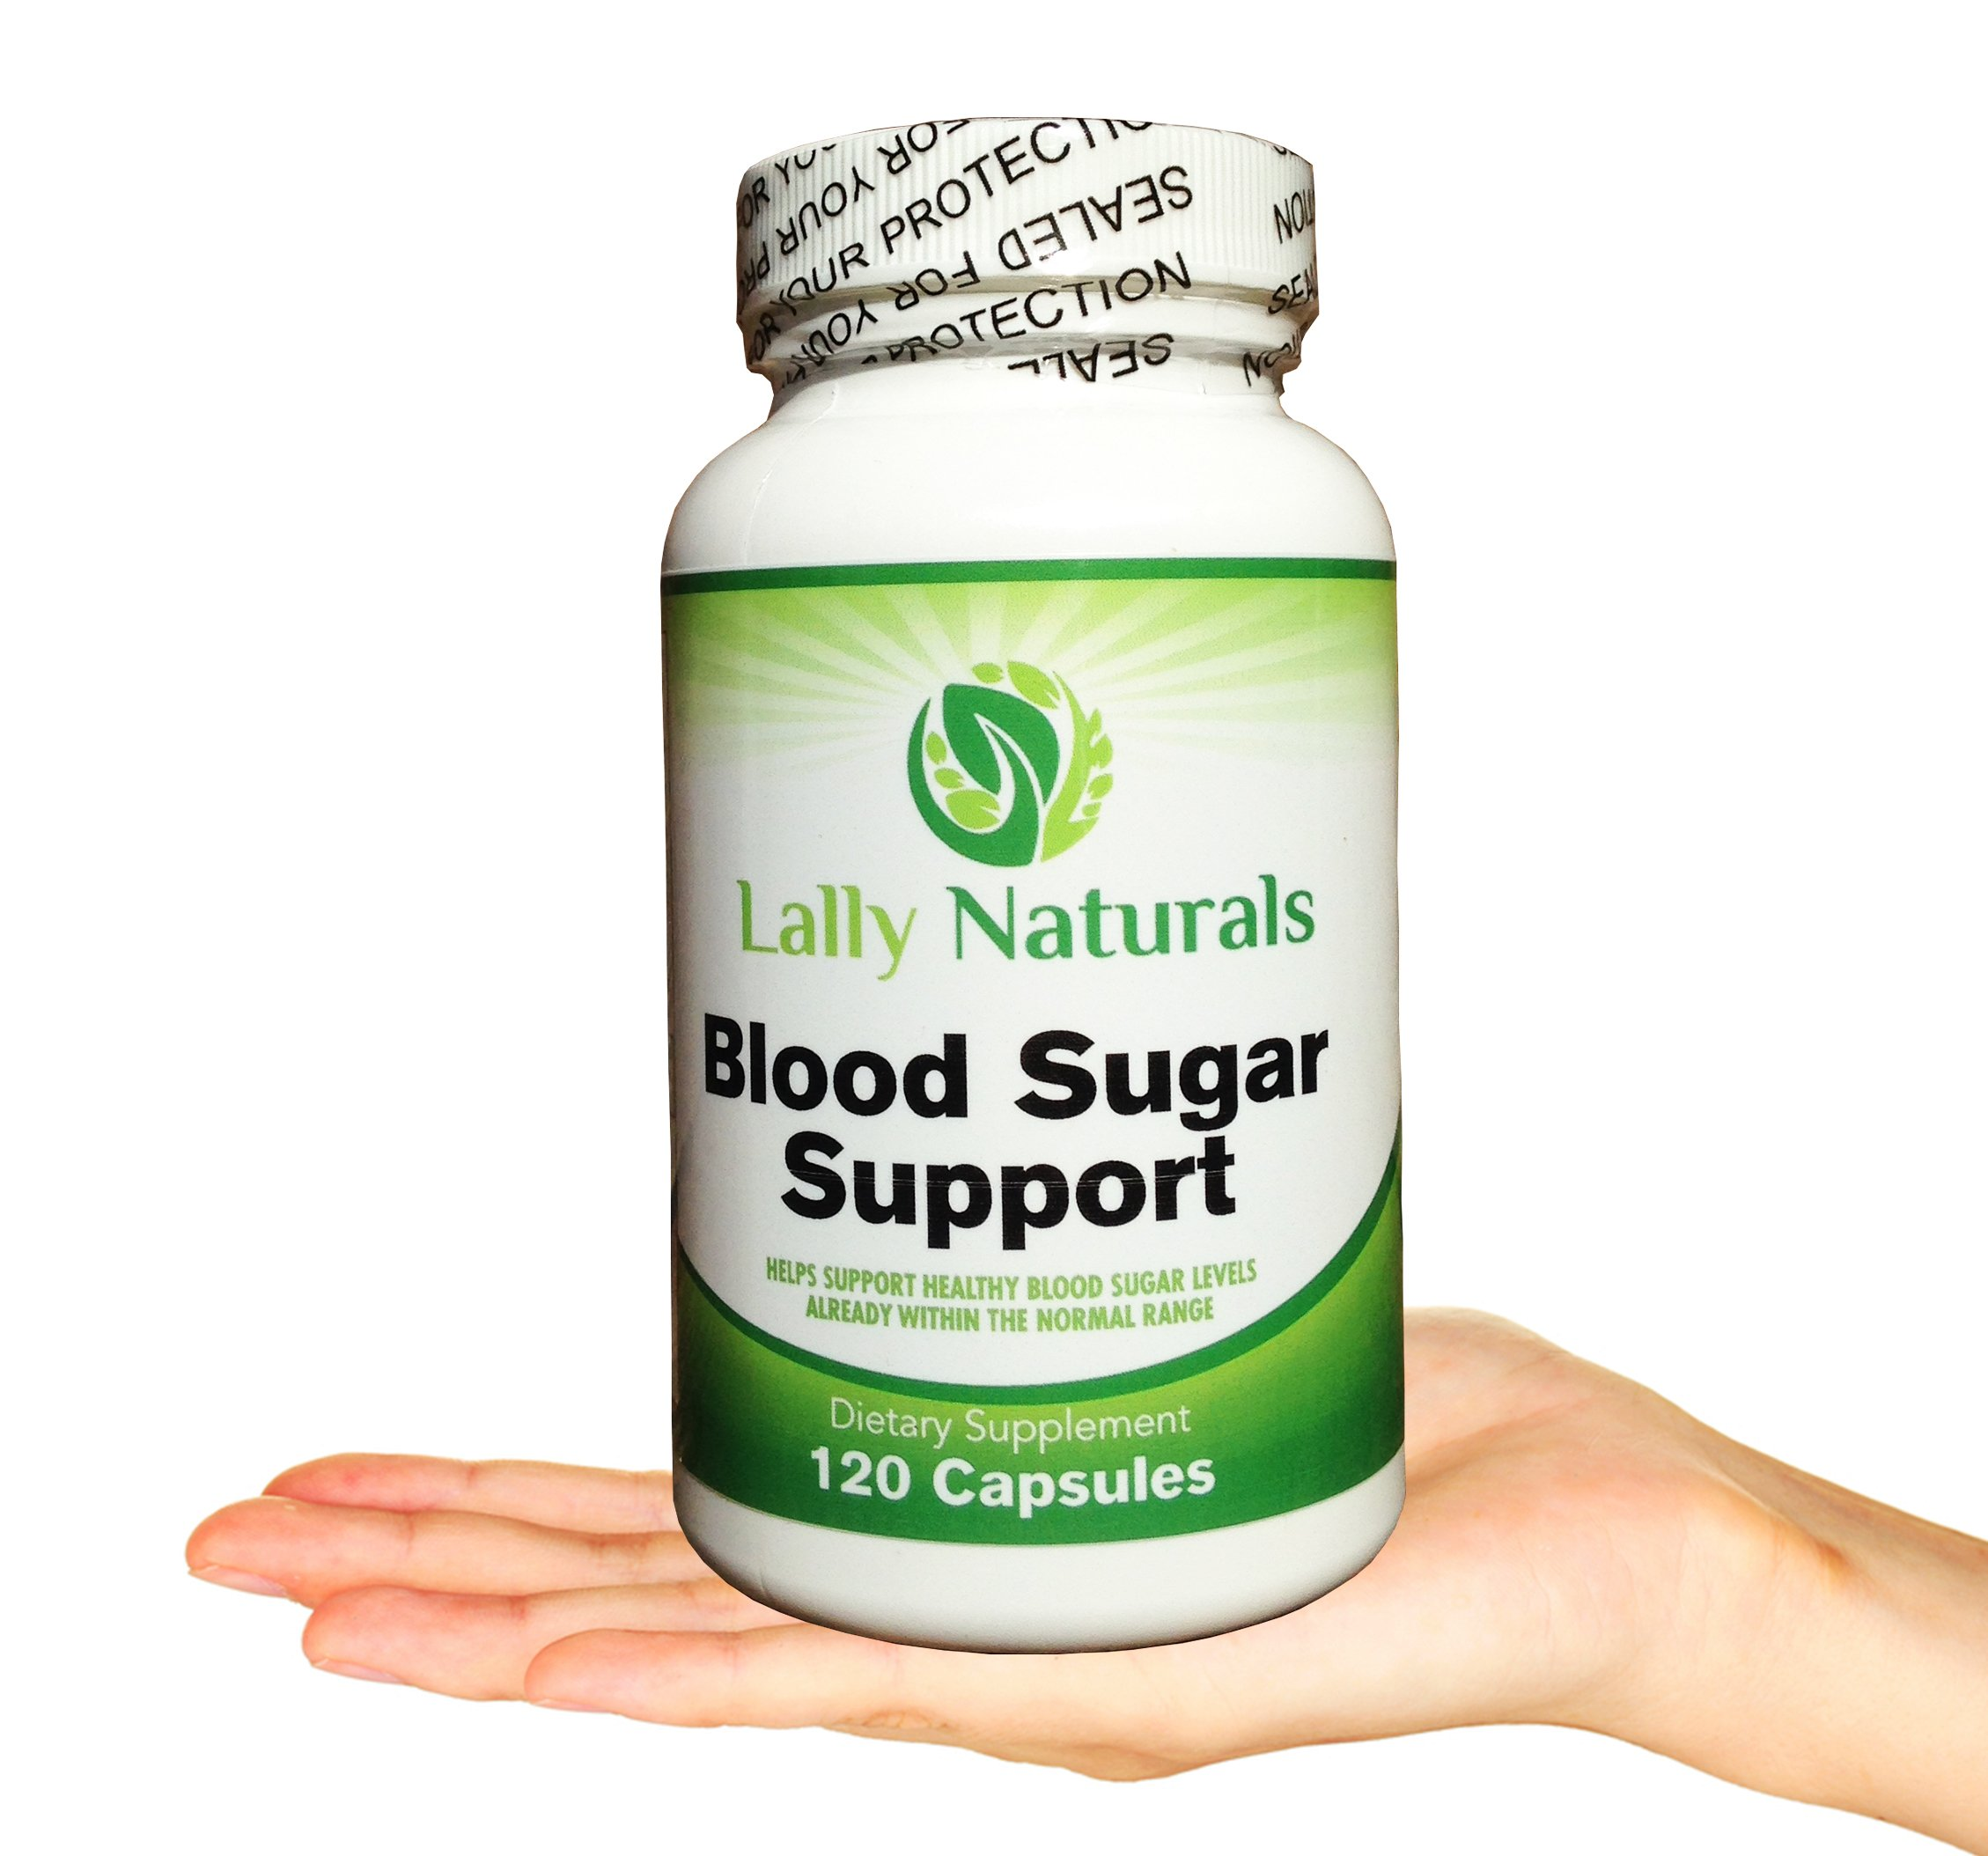 Blood Sugar Support (120 Capsules) - Promotes blood glucose control & healthy blood sugar levels ★ Helps Weight Loss & Reduces Carb Absorption ★ 20 Synergistic Natural herbs with Cinnamon & Chromium